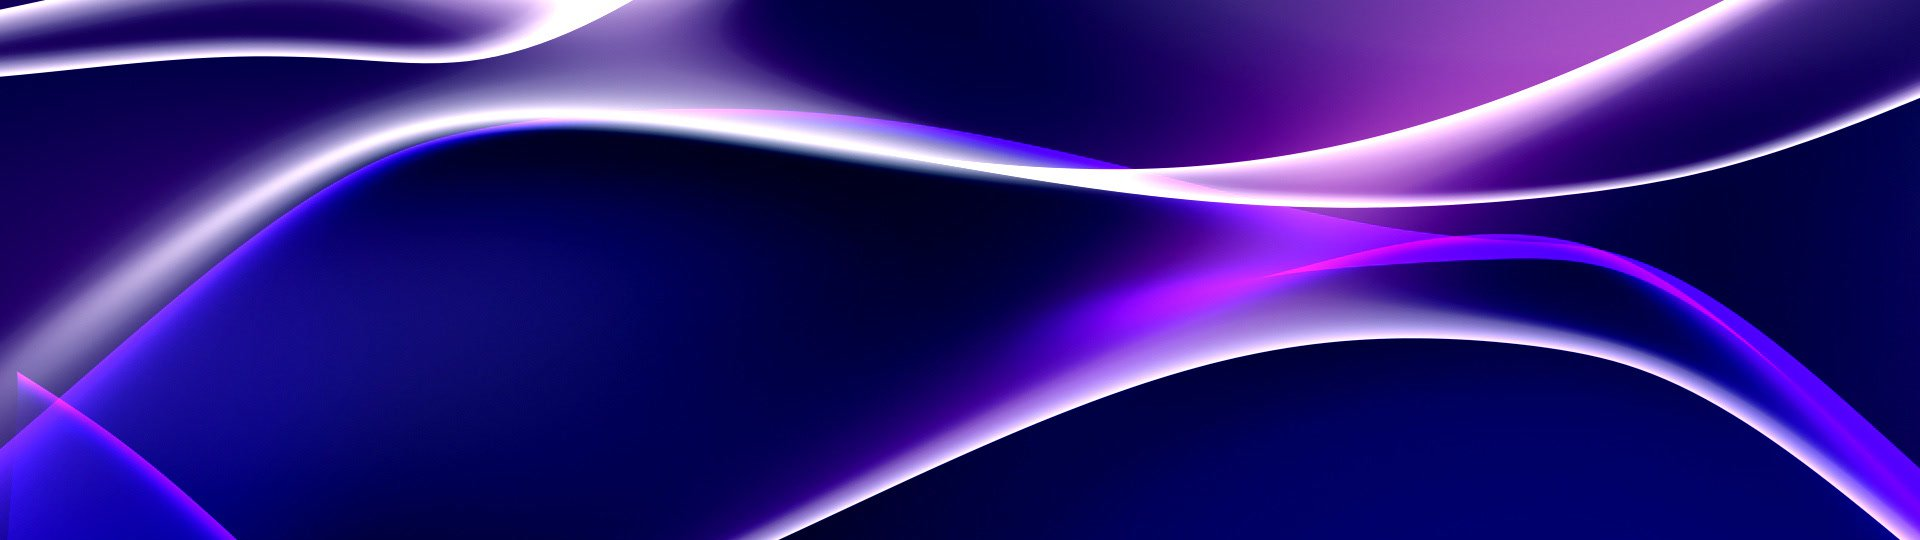 Abstract background LOOP | abstract background, seamless loop, HD 1080p  - ID:6683